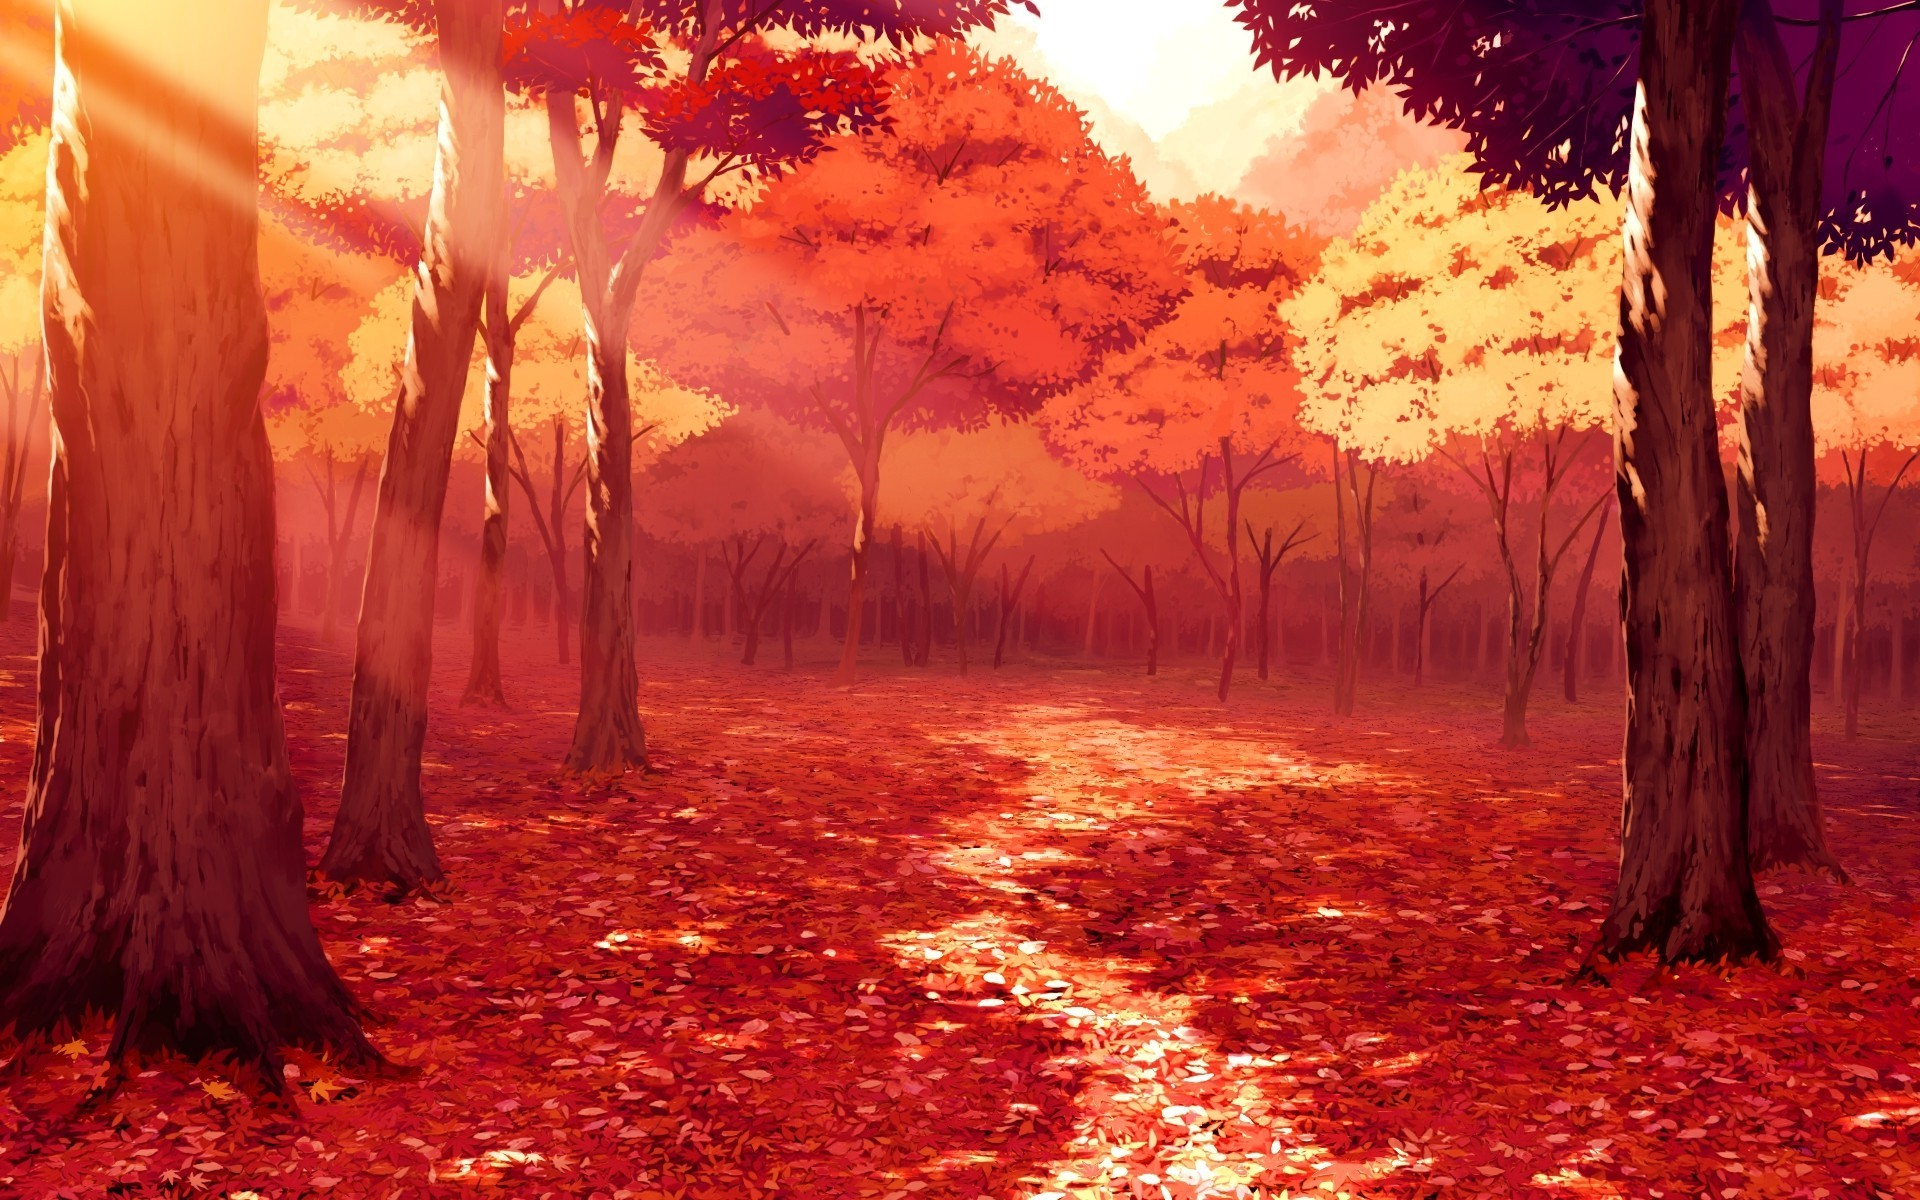 drawing, Artwork, Fall, Leaves, Sunlight, Forest, Red, Anime Wallpapers HD  / Desktop and Mobile Backgrounds